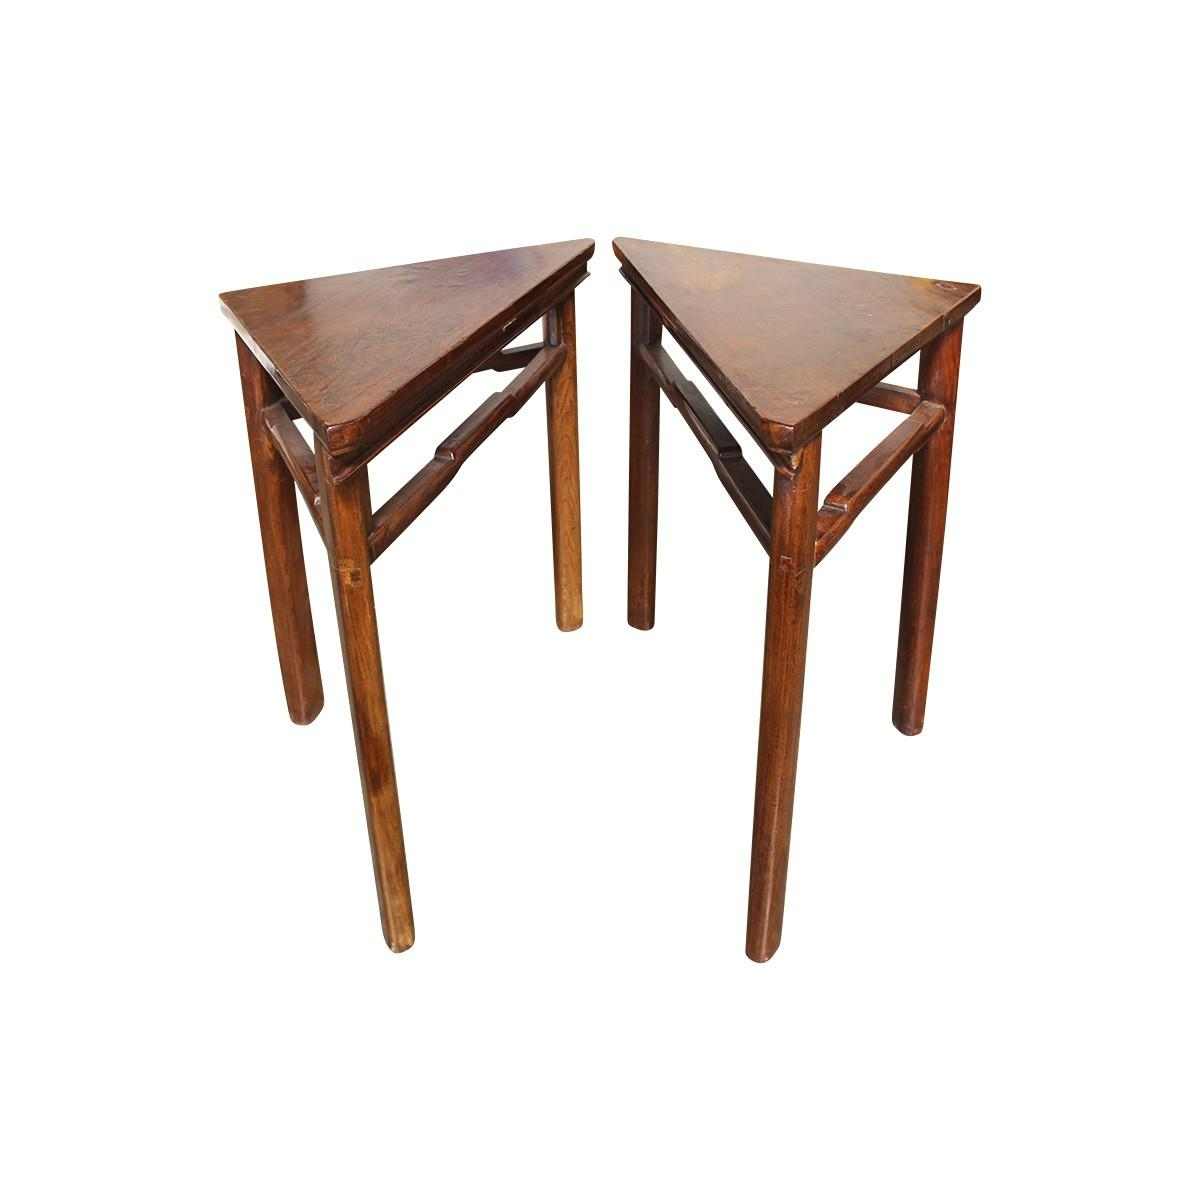 Antique Triangle Accent Tables 2